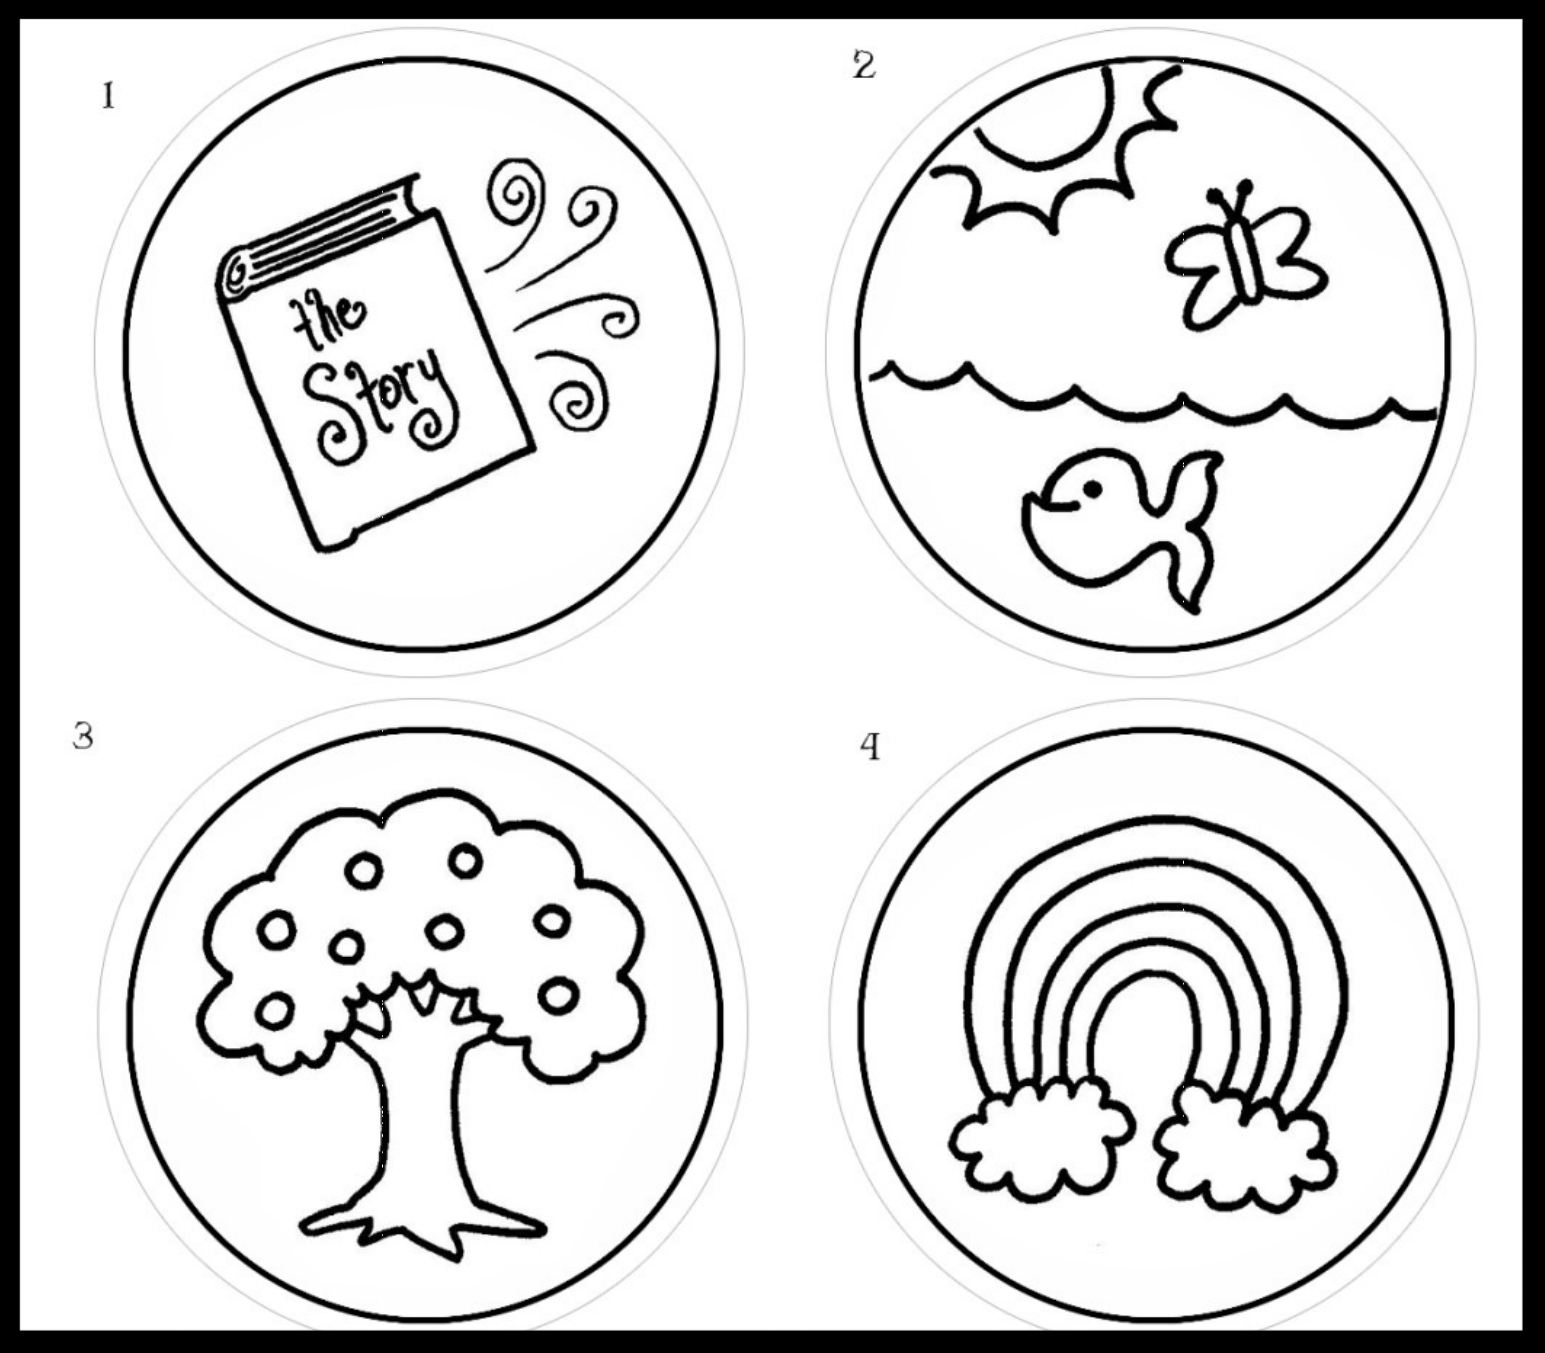 Advent Ornaments Printout - Ornaments for each of the 24 stories leading up to Christmas day for children to color.Download